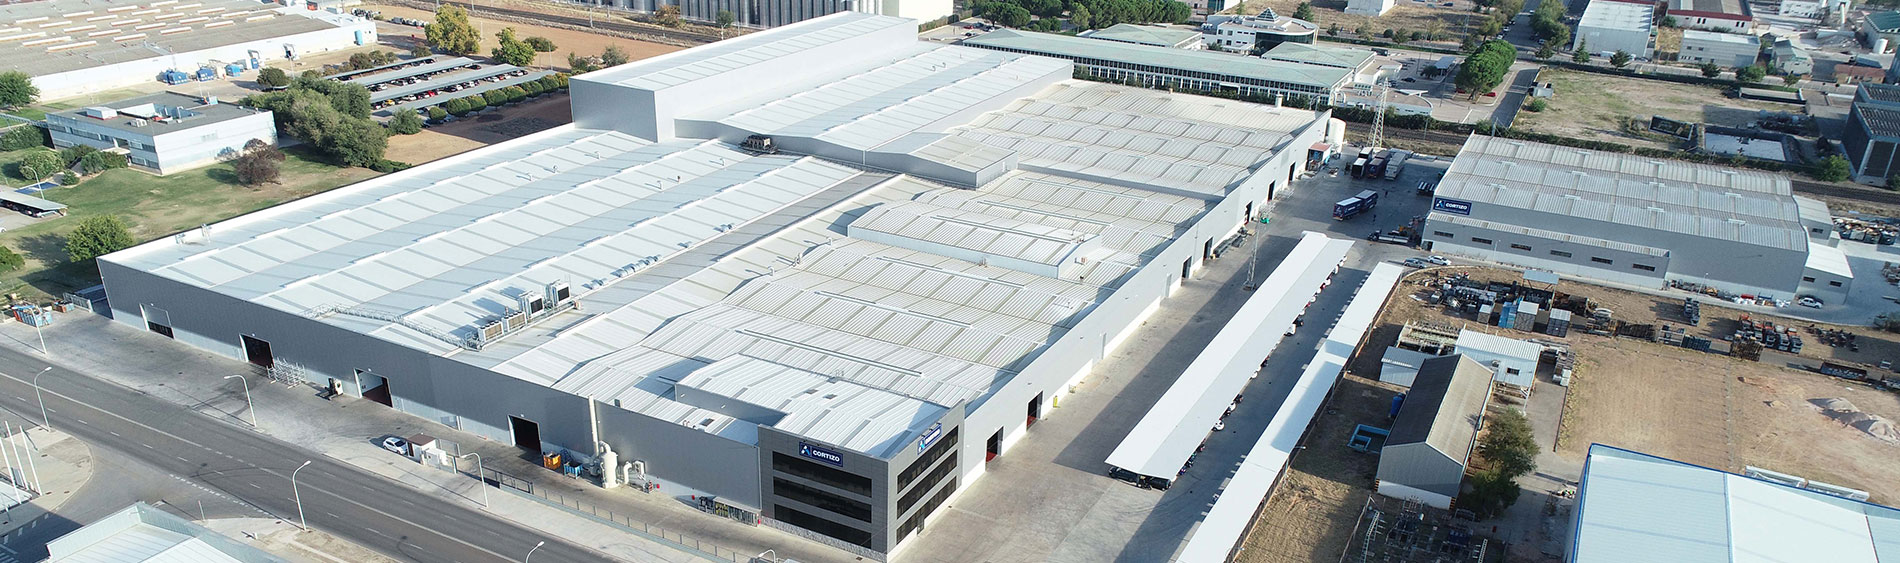 CORTIZO MANZANARES - CIUDAD REAL (SPAIN)